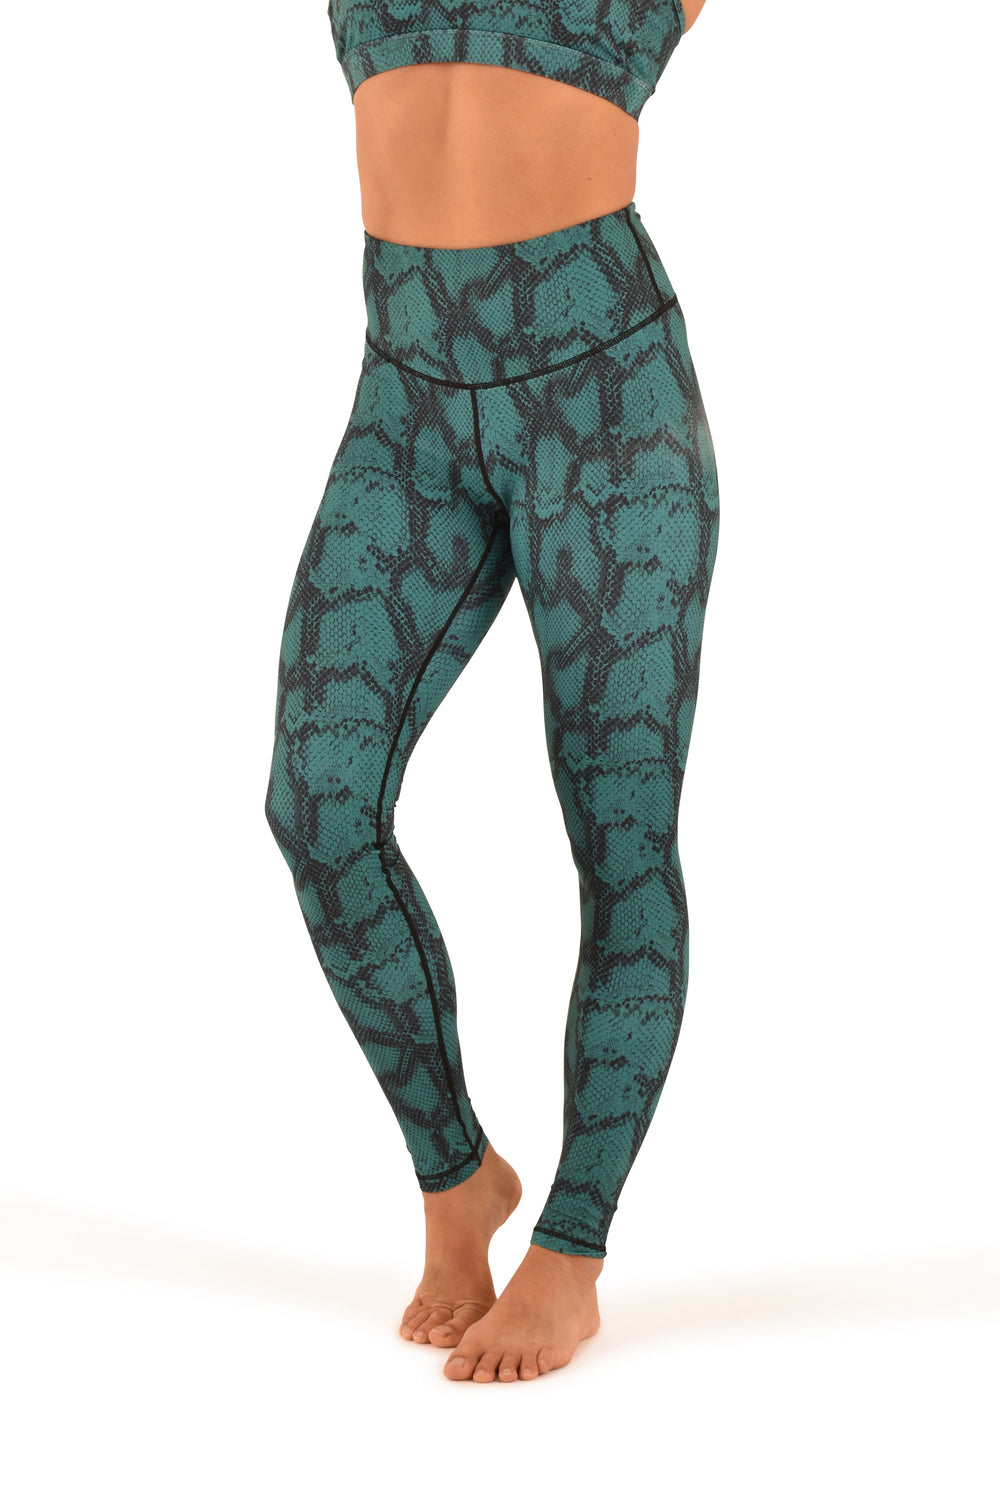 OFF THE POLE Lifestyle Leggings - Emerald Green Snake Print